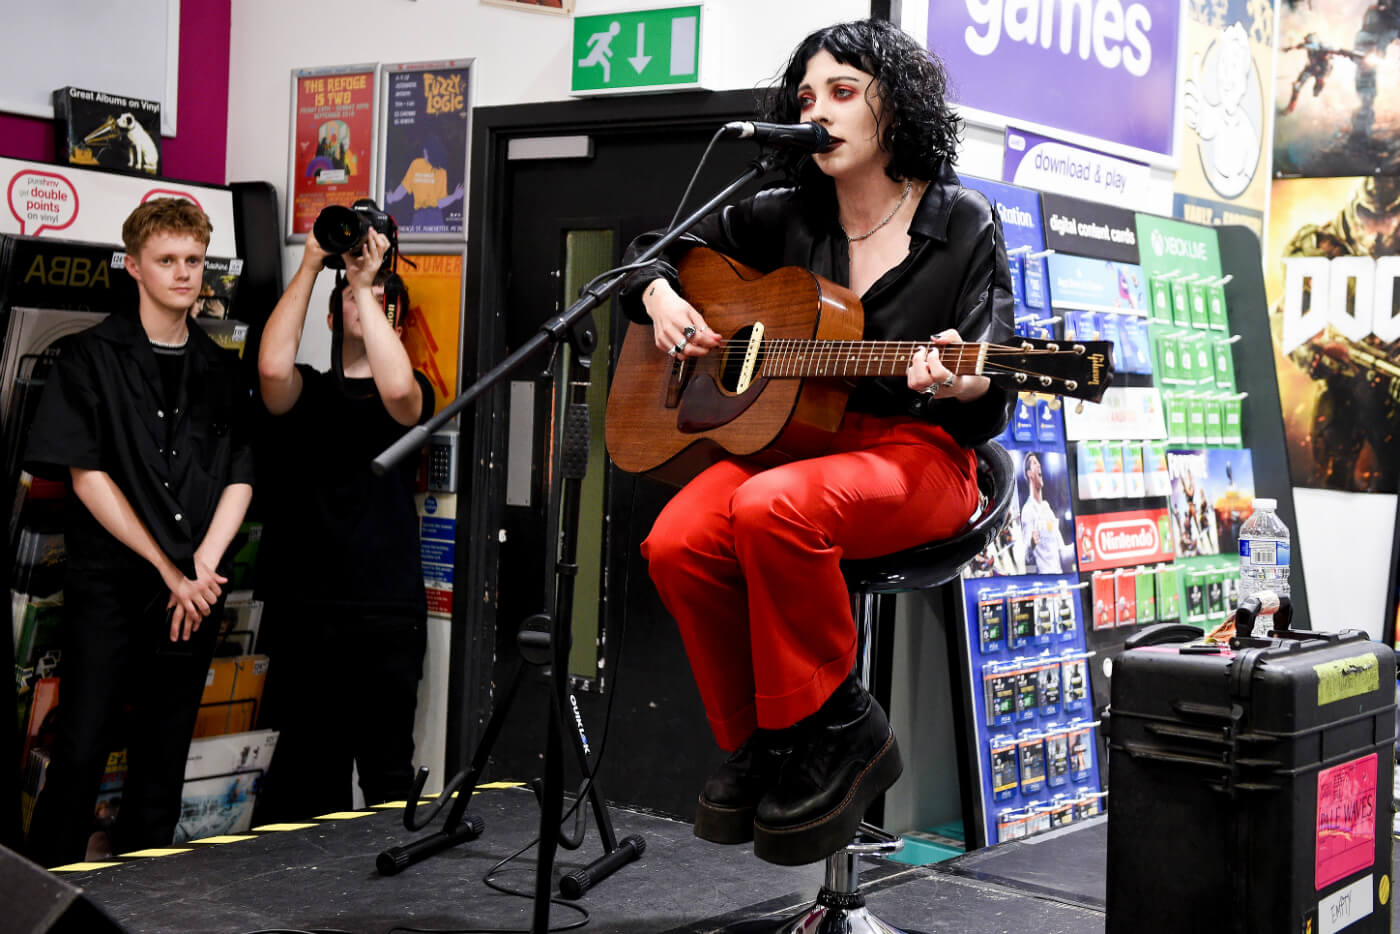 Manchester quartet Pale Waves signing copies of their new album My Mind Makes Noises and performing at HMV Manchester - image courtesy Shirlaine Forrest